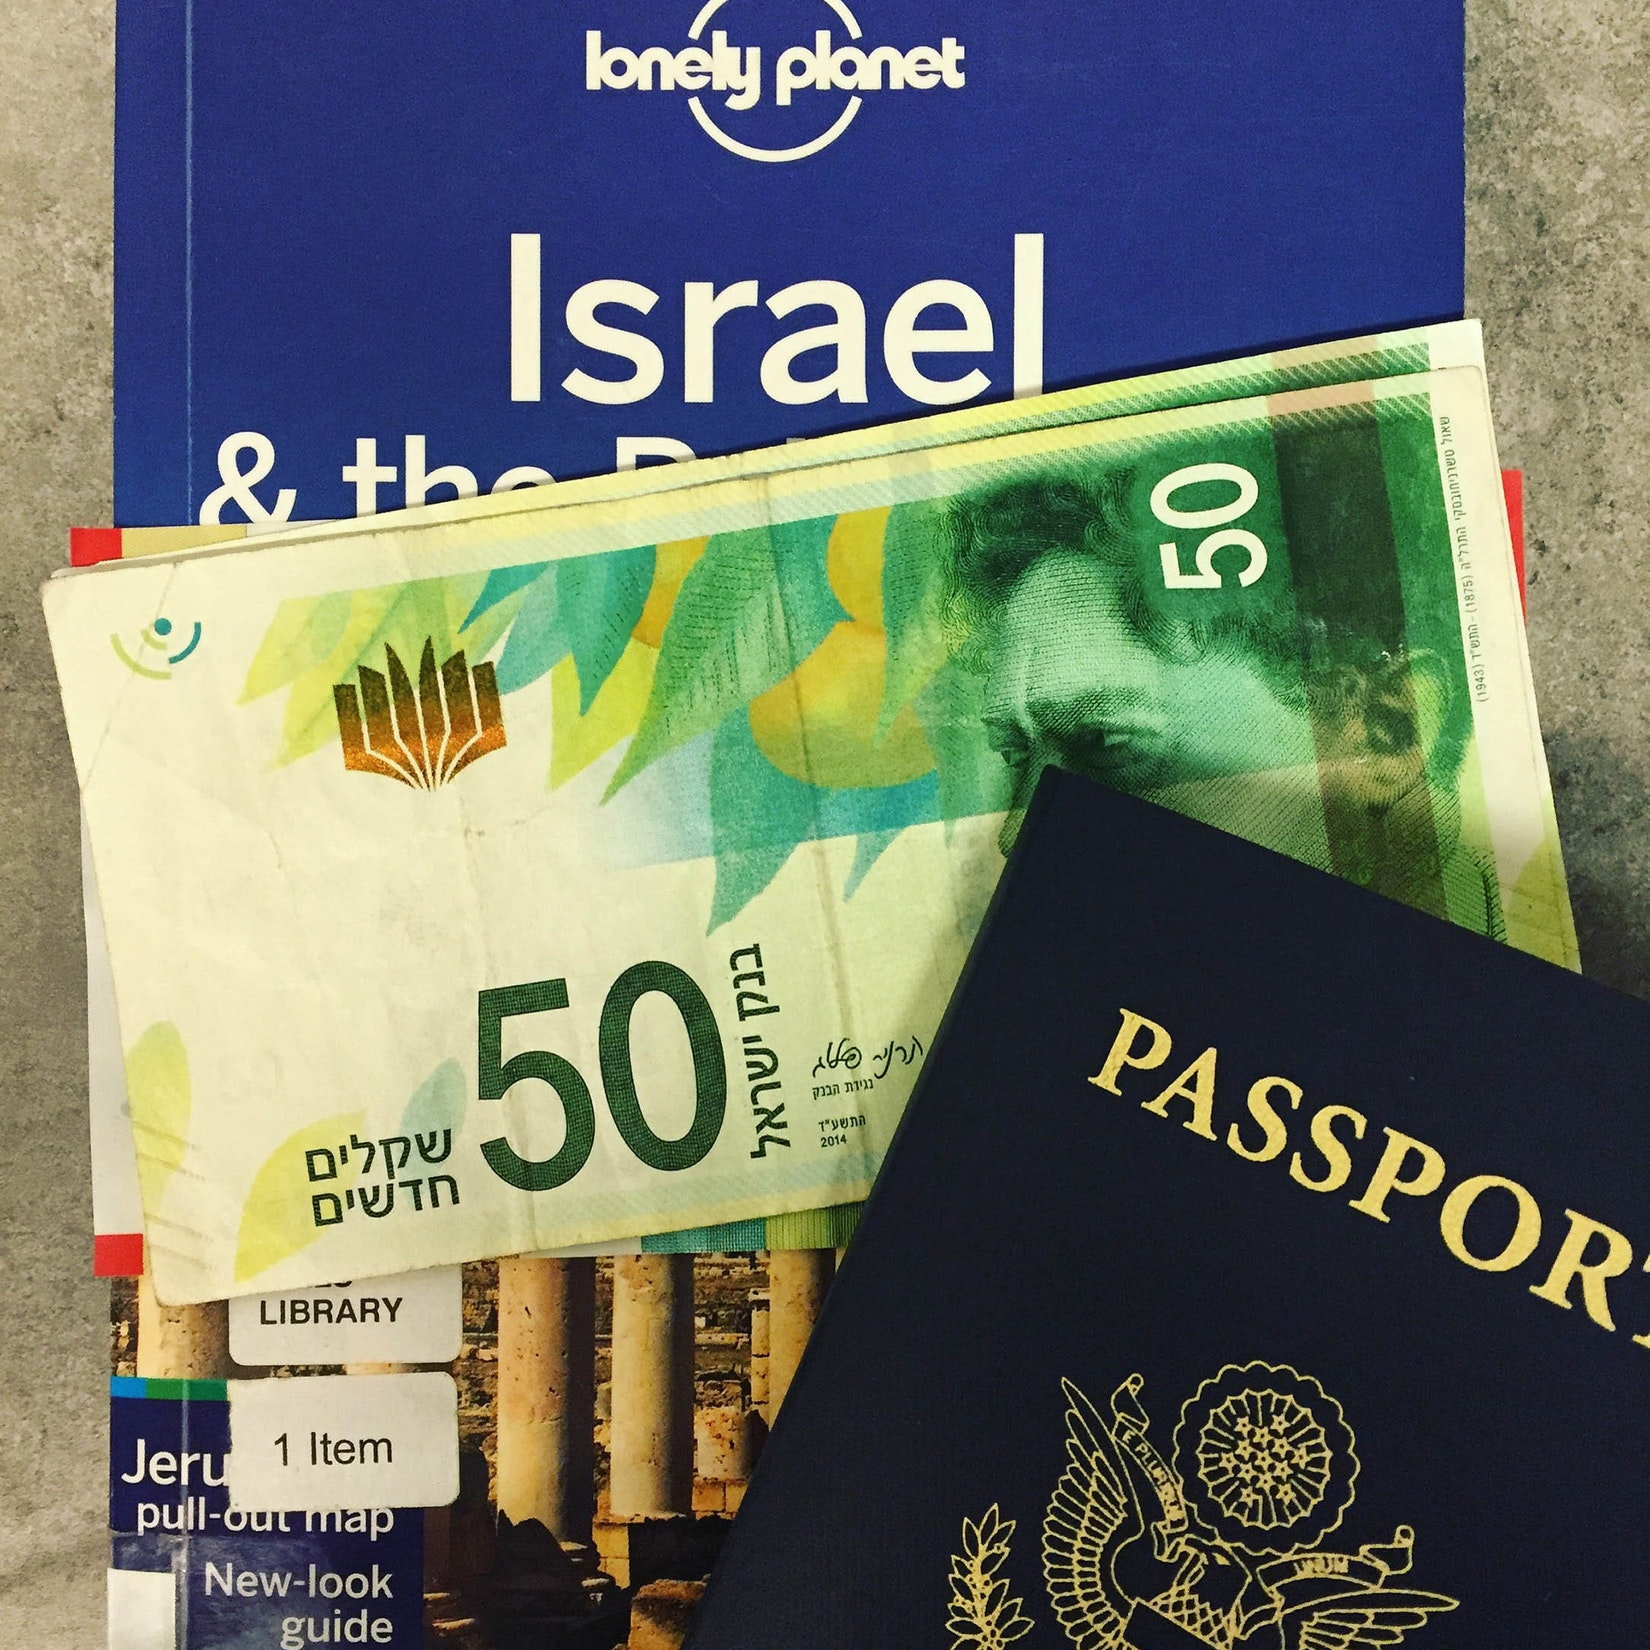 USA Passport with money from Israel